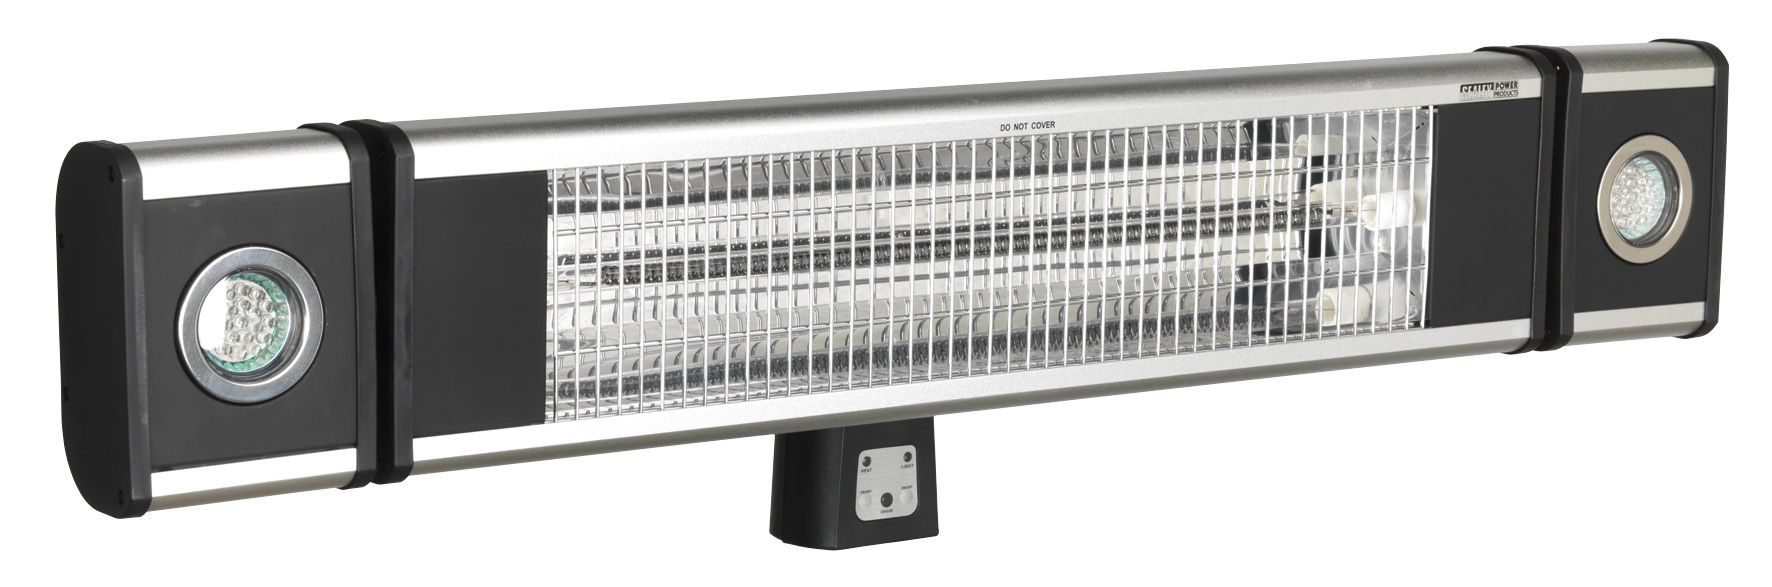 Sealey IWMH1809LR 1.8kW Carbon Fibre Infrared Wall Heater With Lights 230v